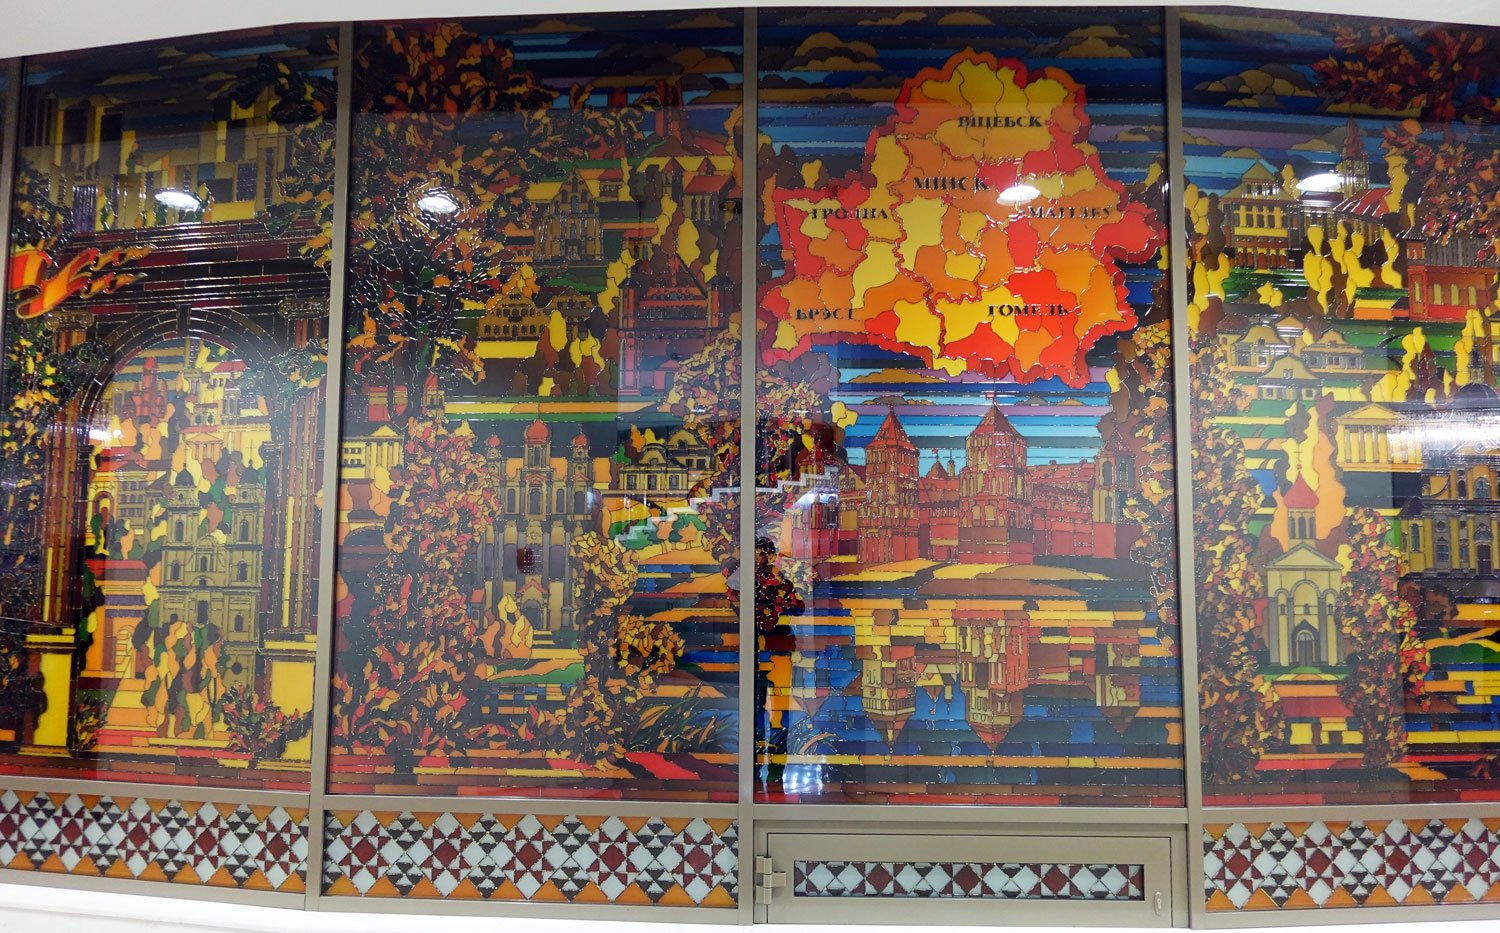 hotel belarus minsk rose windows which show scenes from the nation's history.